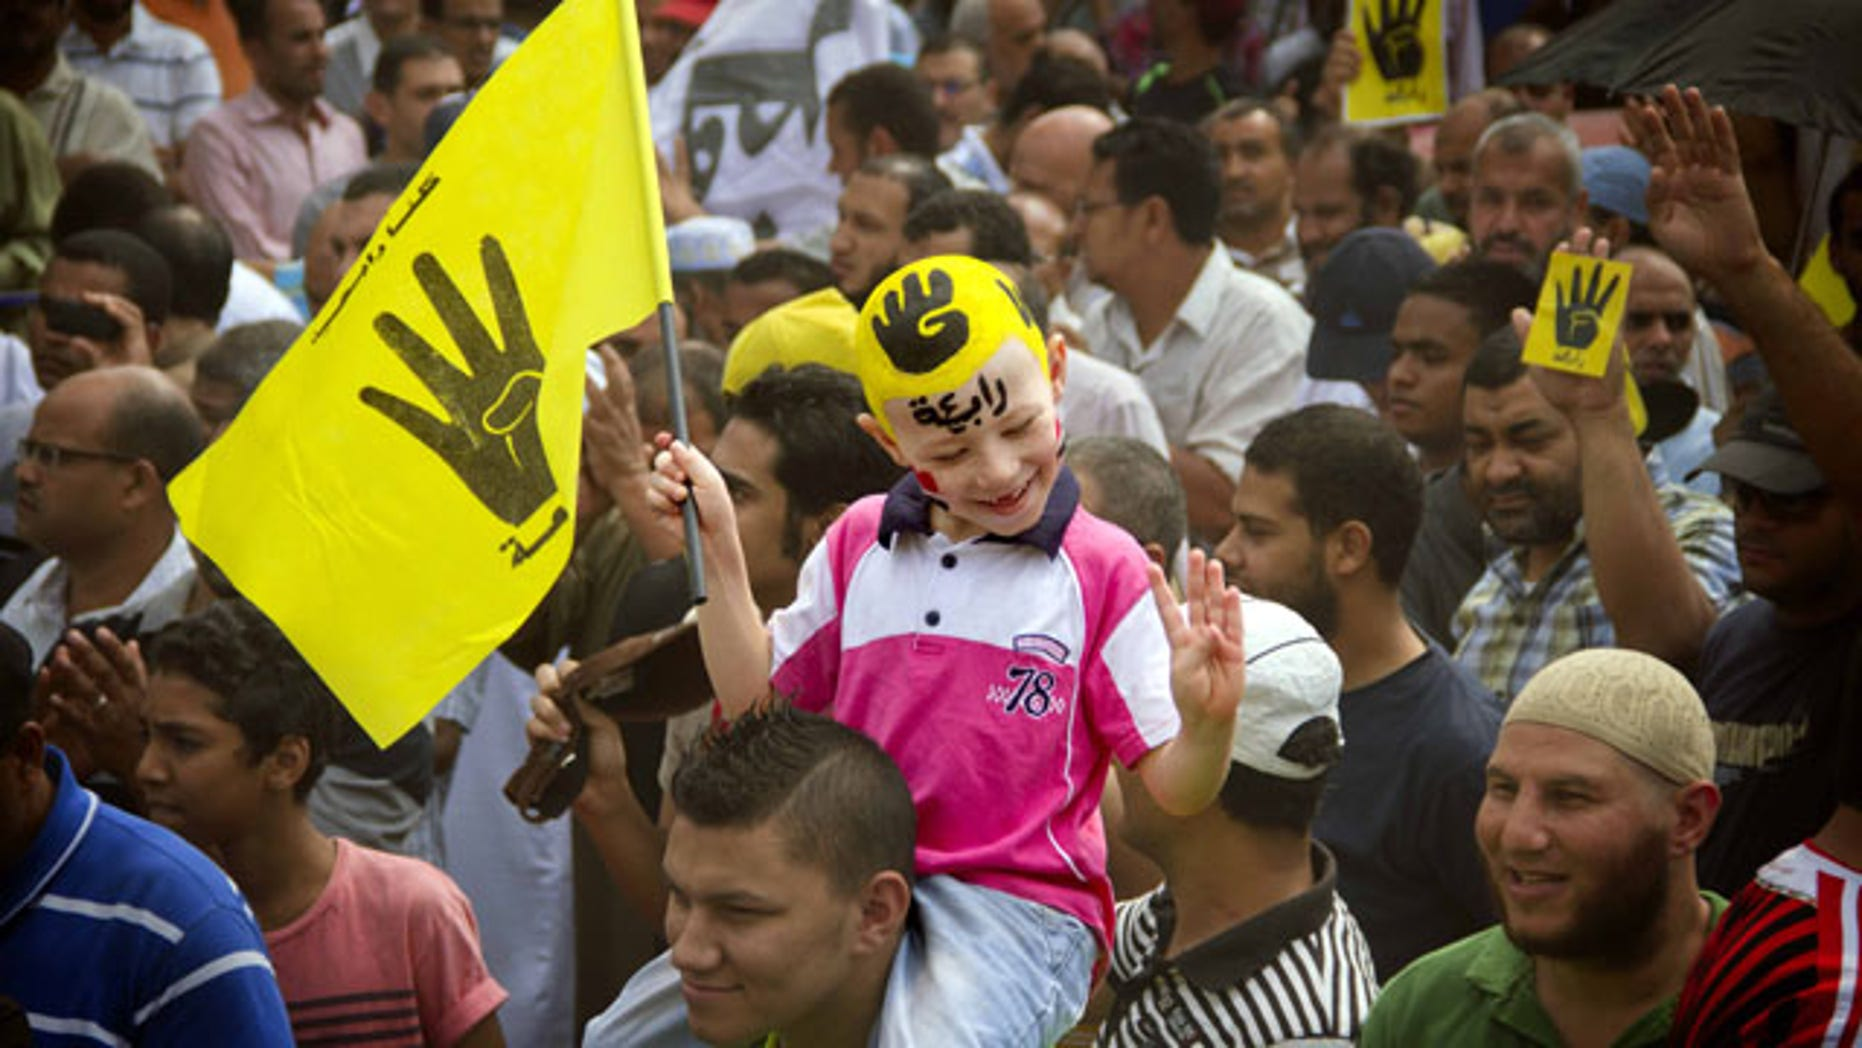 September 27, 2013: A young Egyptian boy participates in a demonstration by supporters of ousted President Mohammed Morsi in the Maadi district of Cairo, Egypt. (AP Photo/Hamada Elrasam, File)